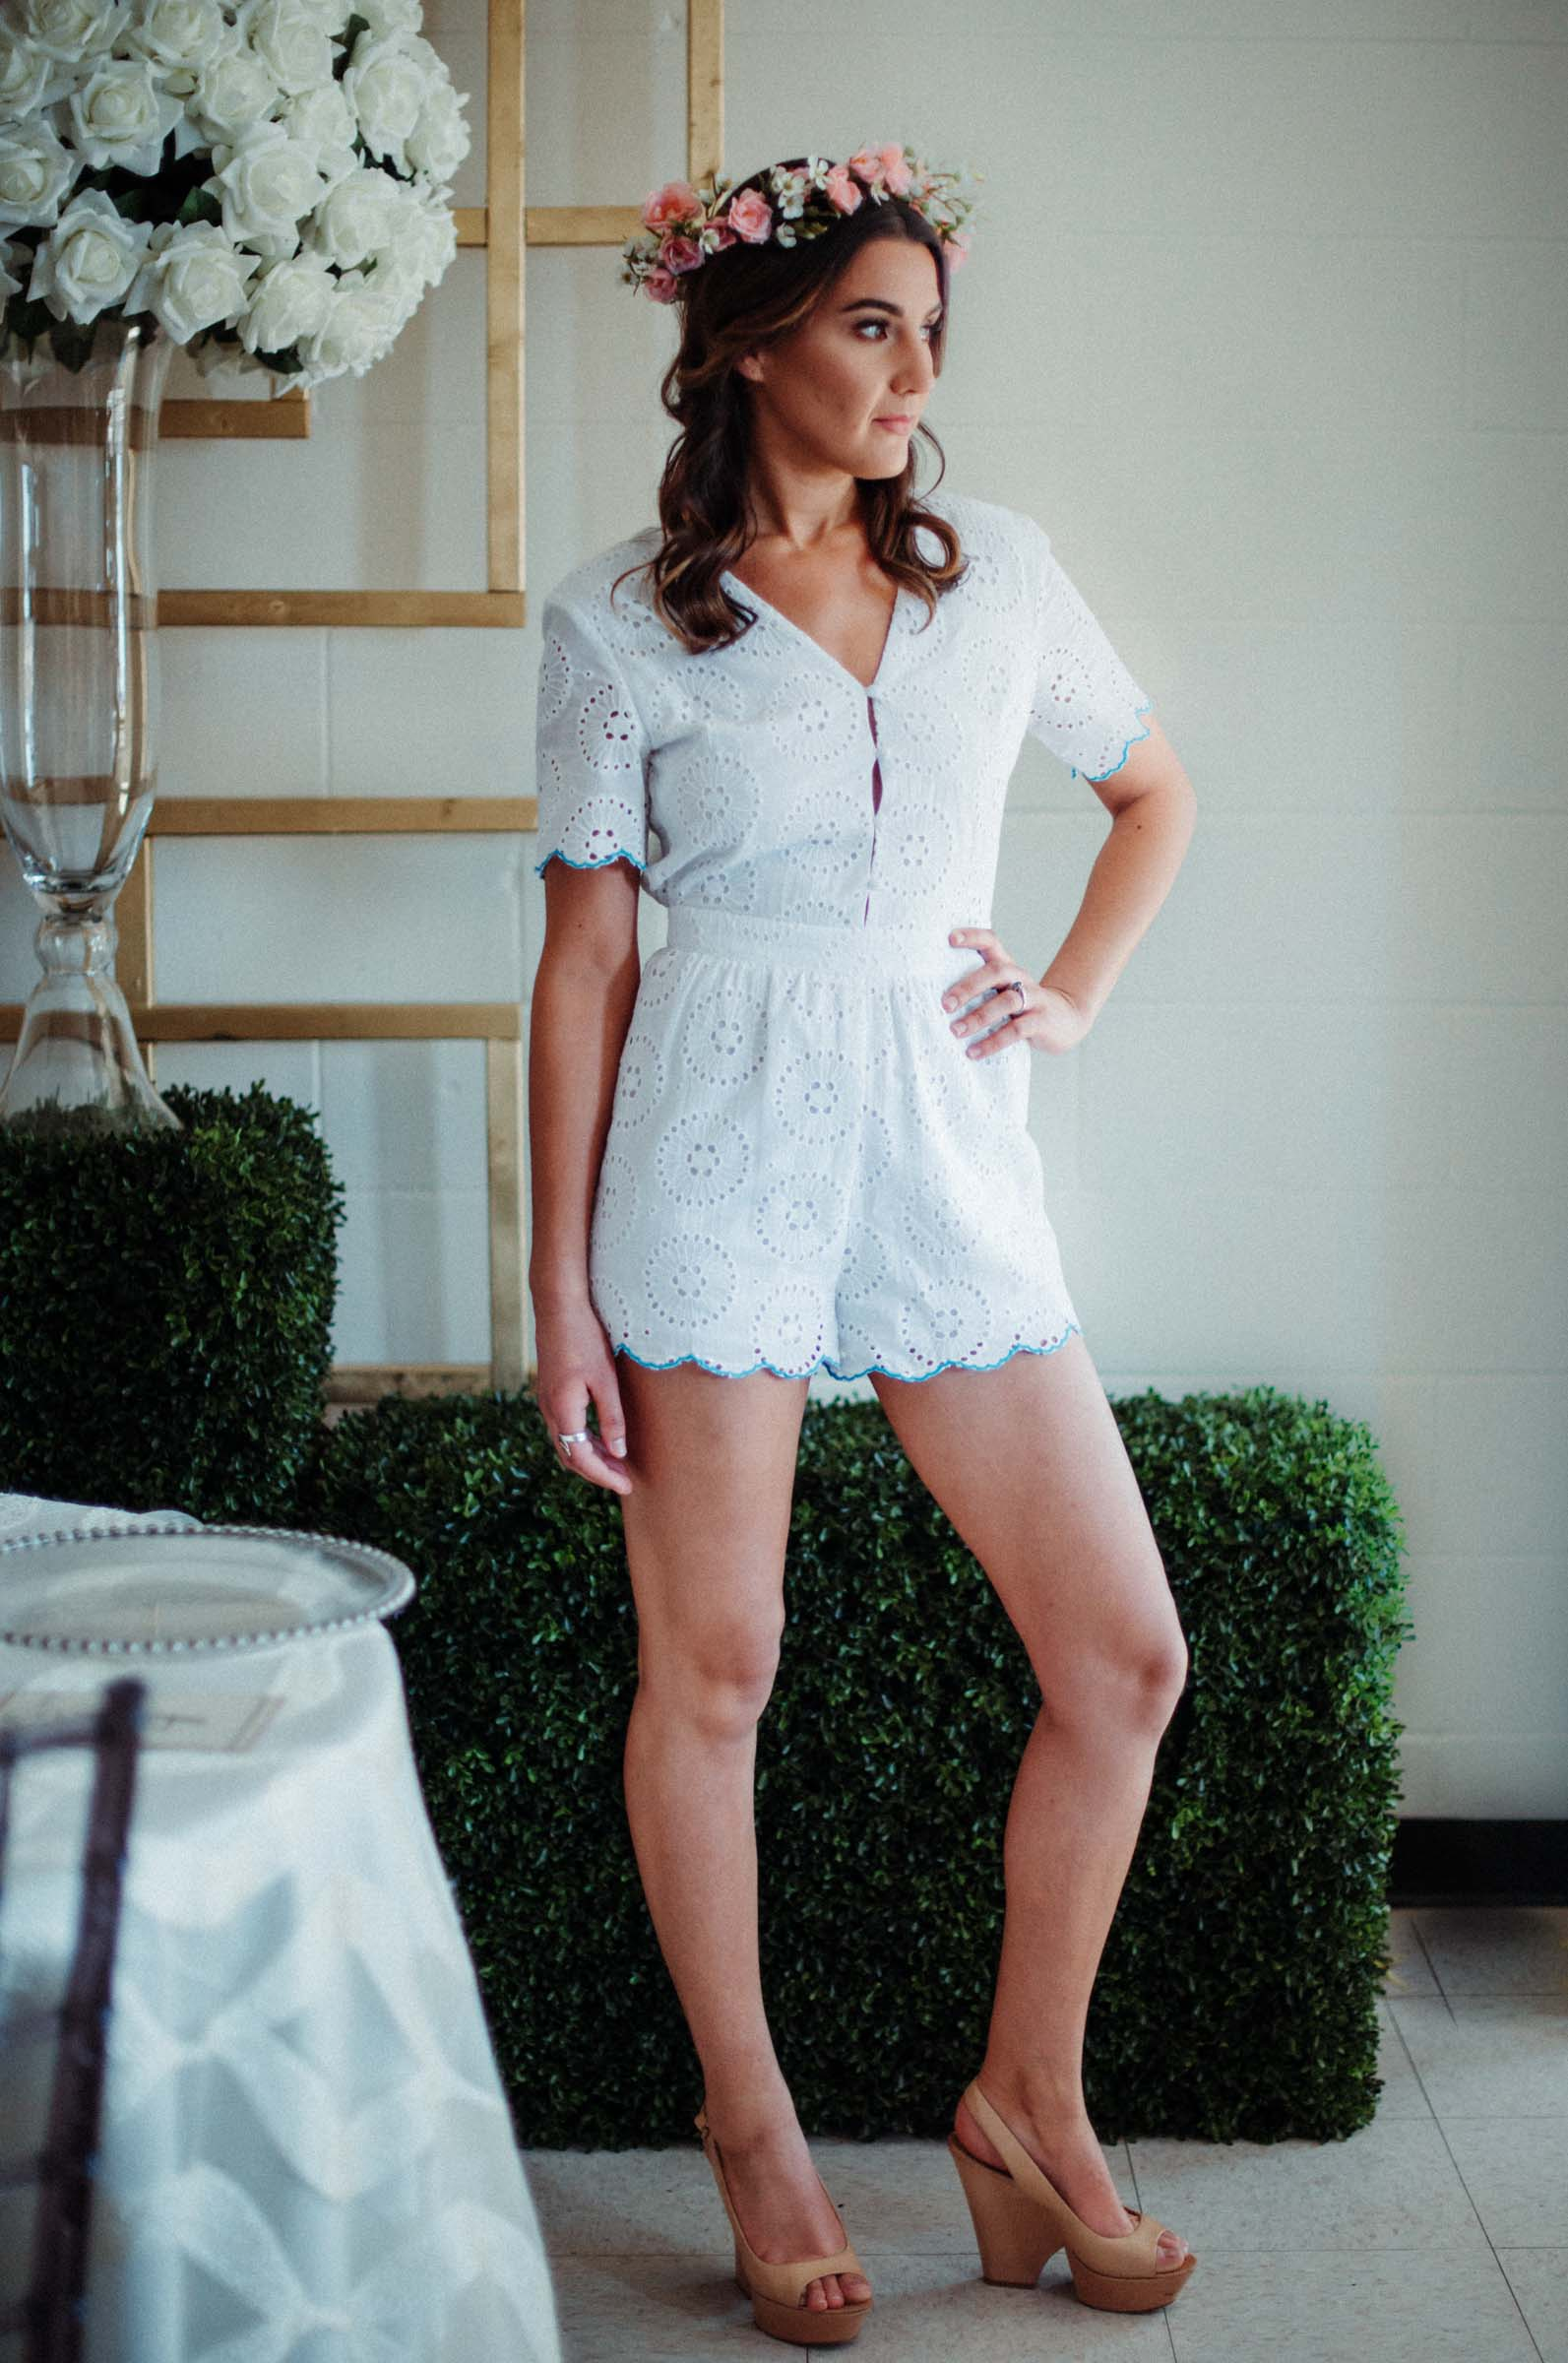 Poetic Button Up Romper / FINAL SALE